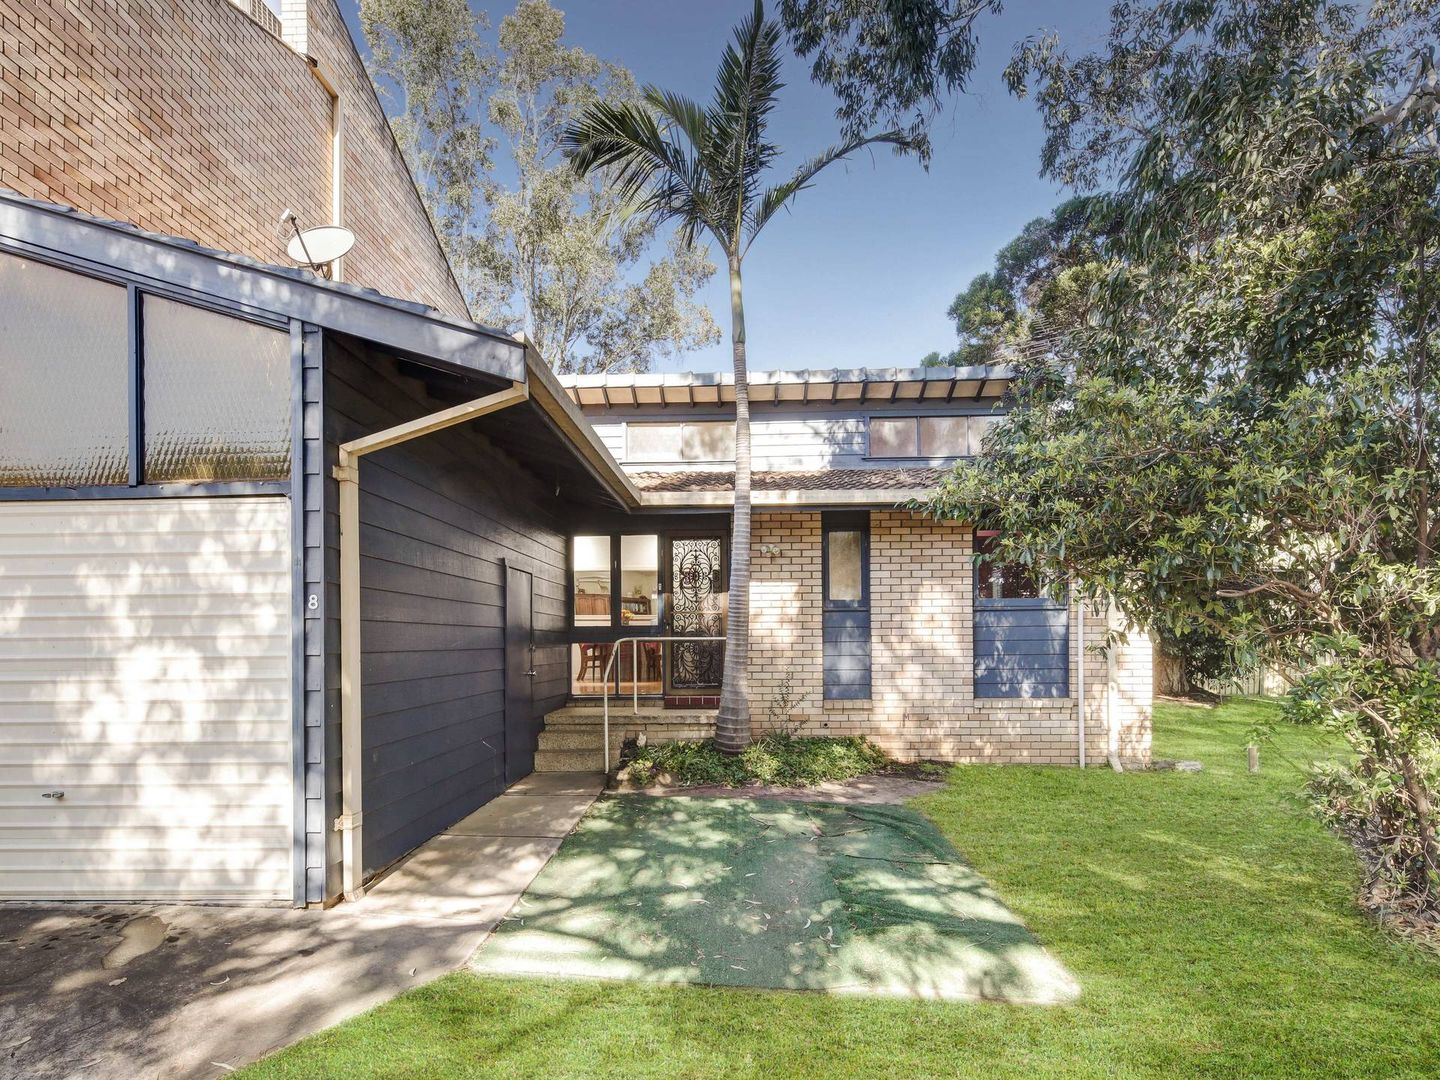 8/113 Hector Street, Sefton NSW 2162, Image 0